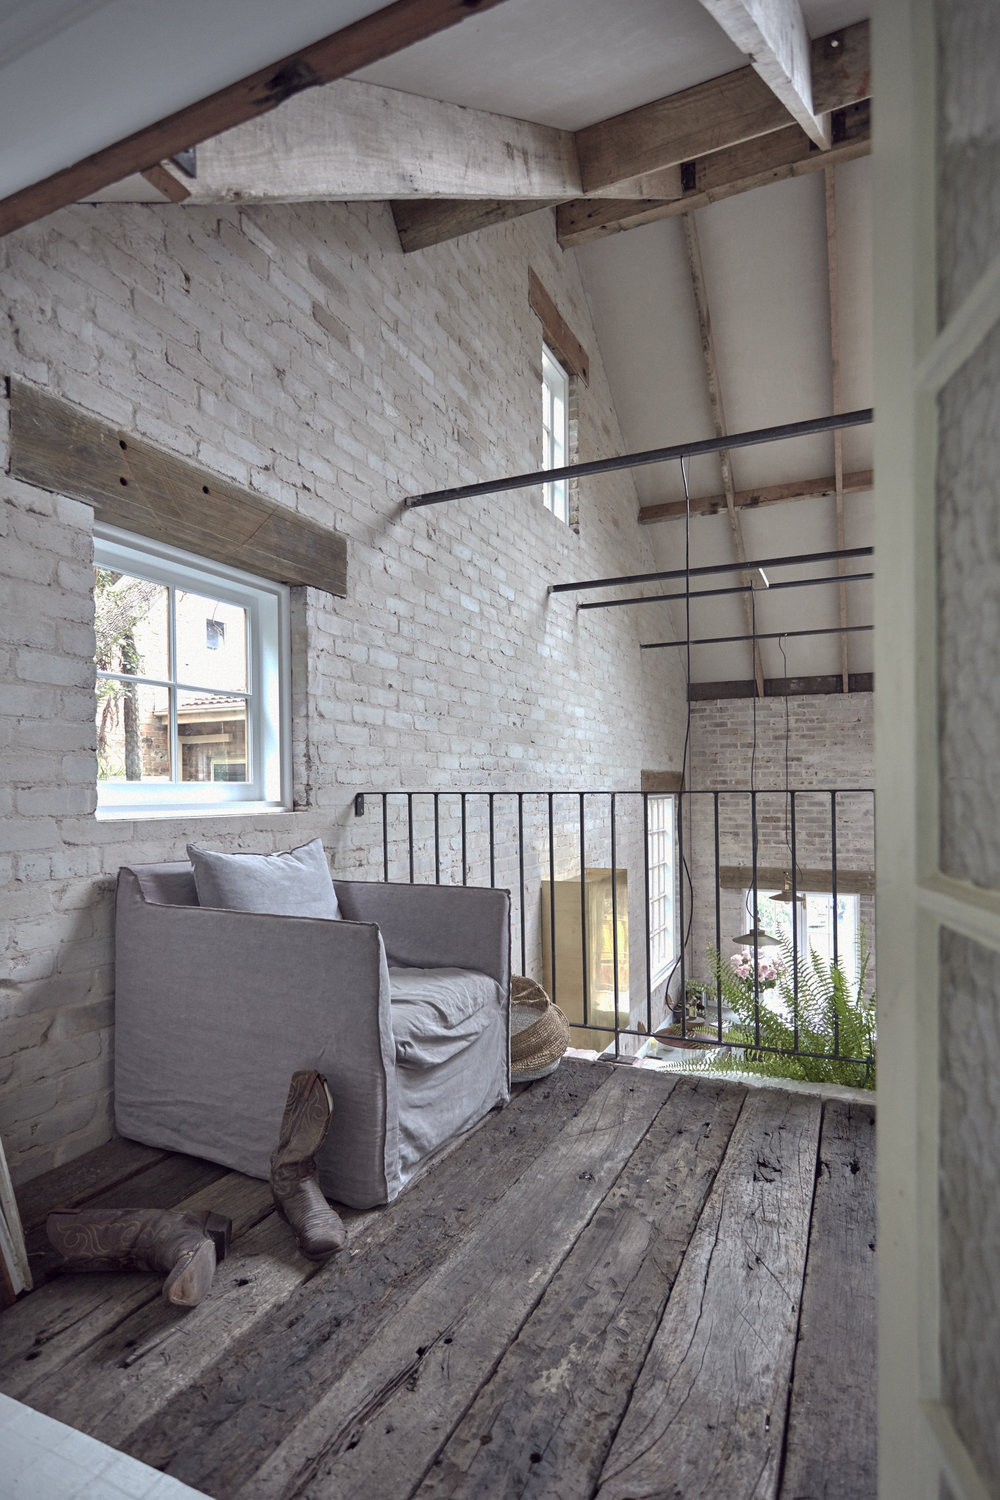 The Nordroom - A Modern Rustic Barnhouse in Sydney